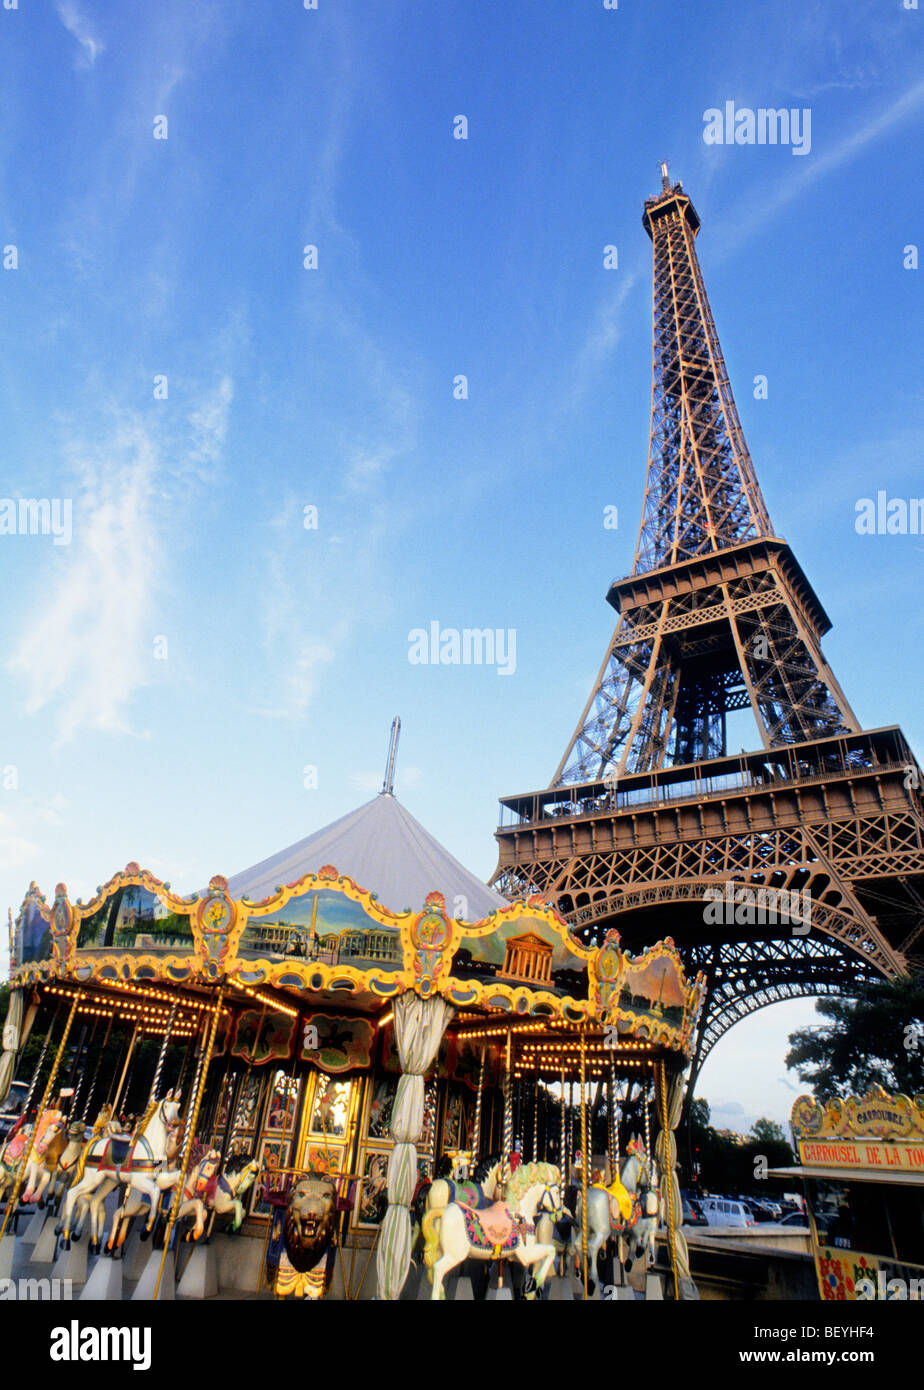 The Eiffel Tower and Carousel Paris France Sandra Baker - Stock Image